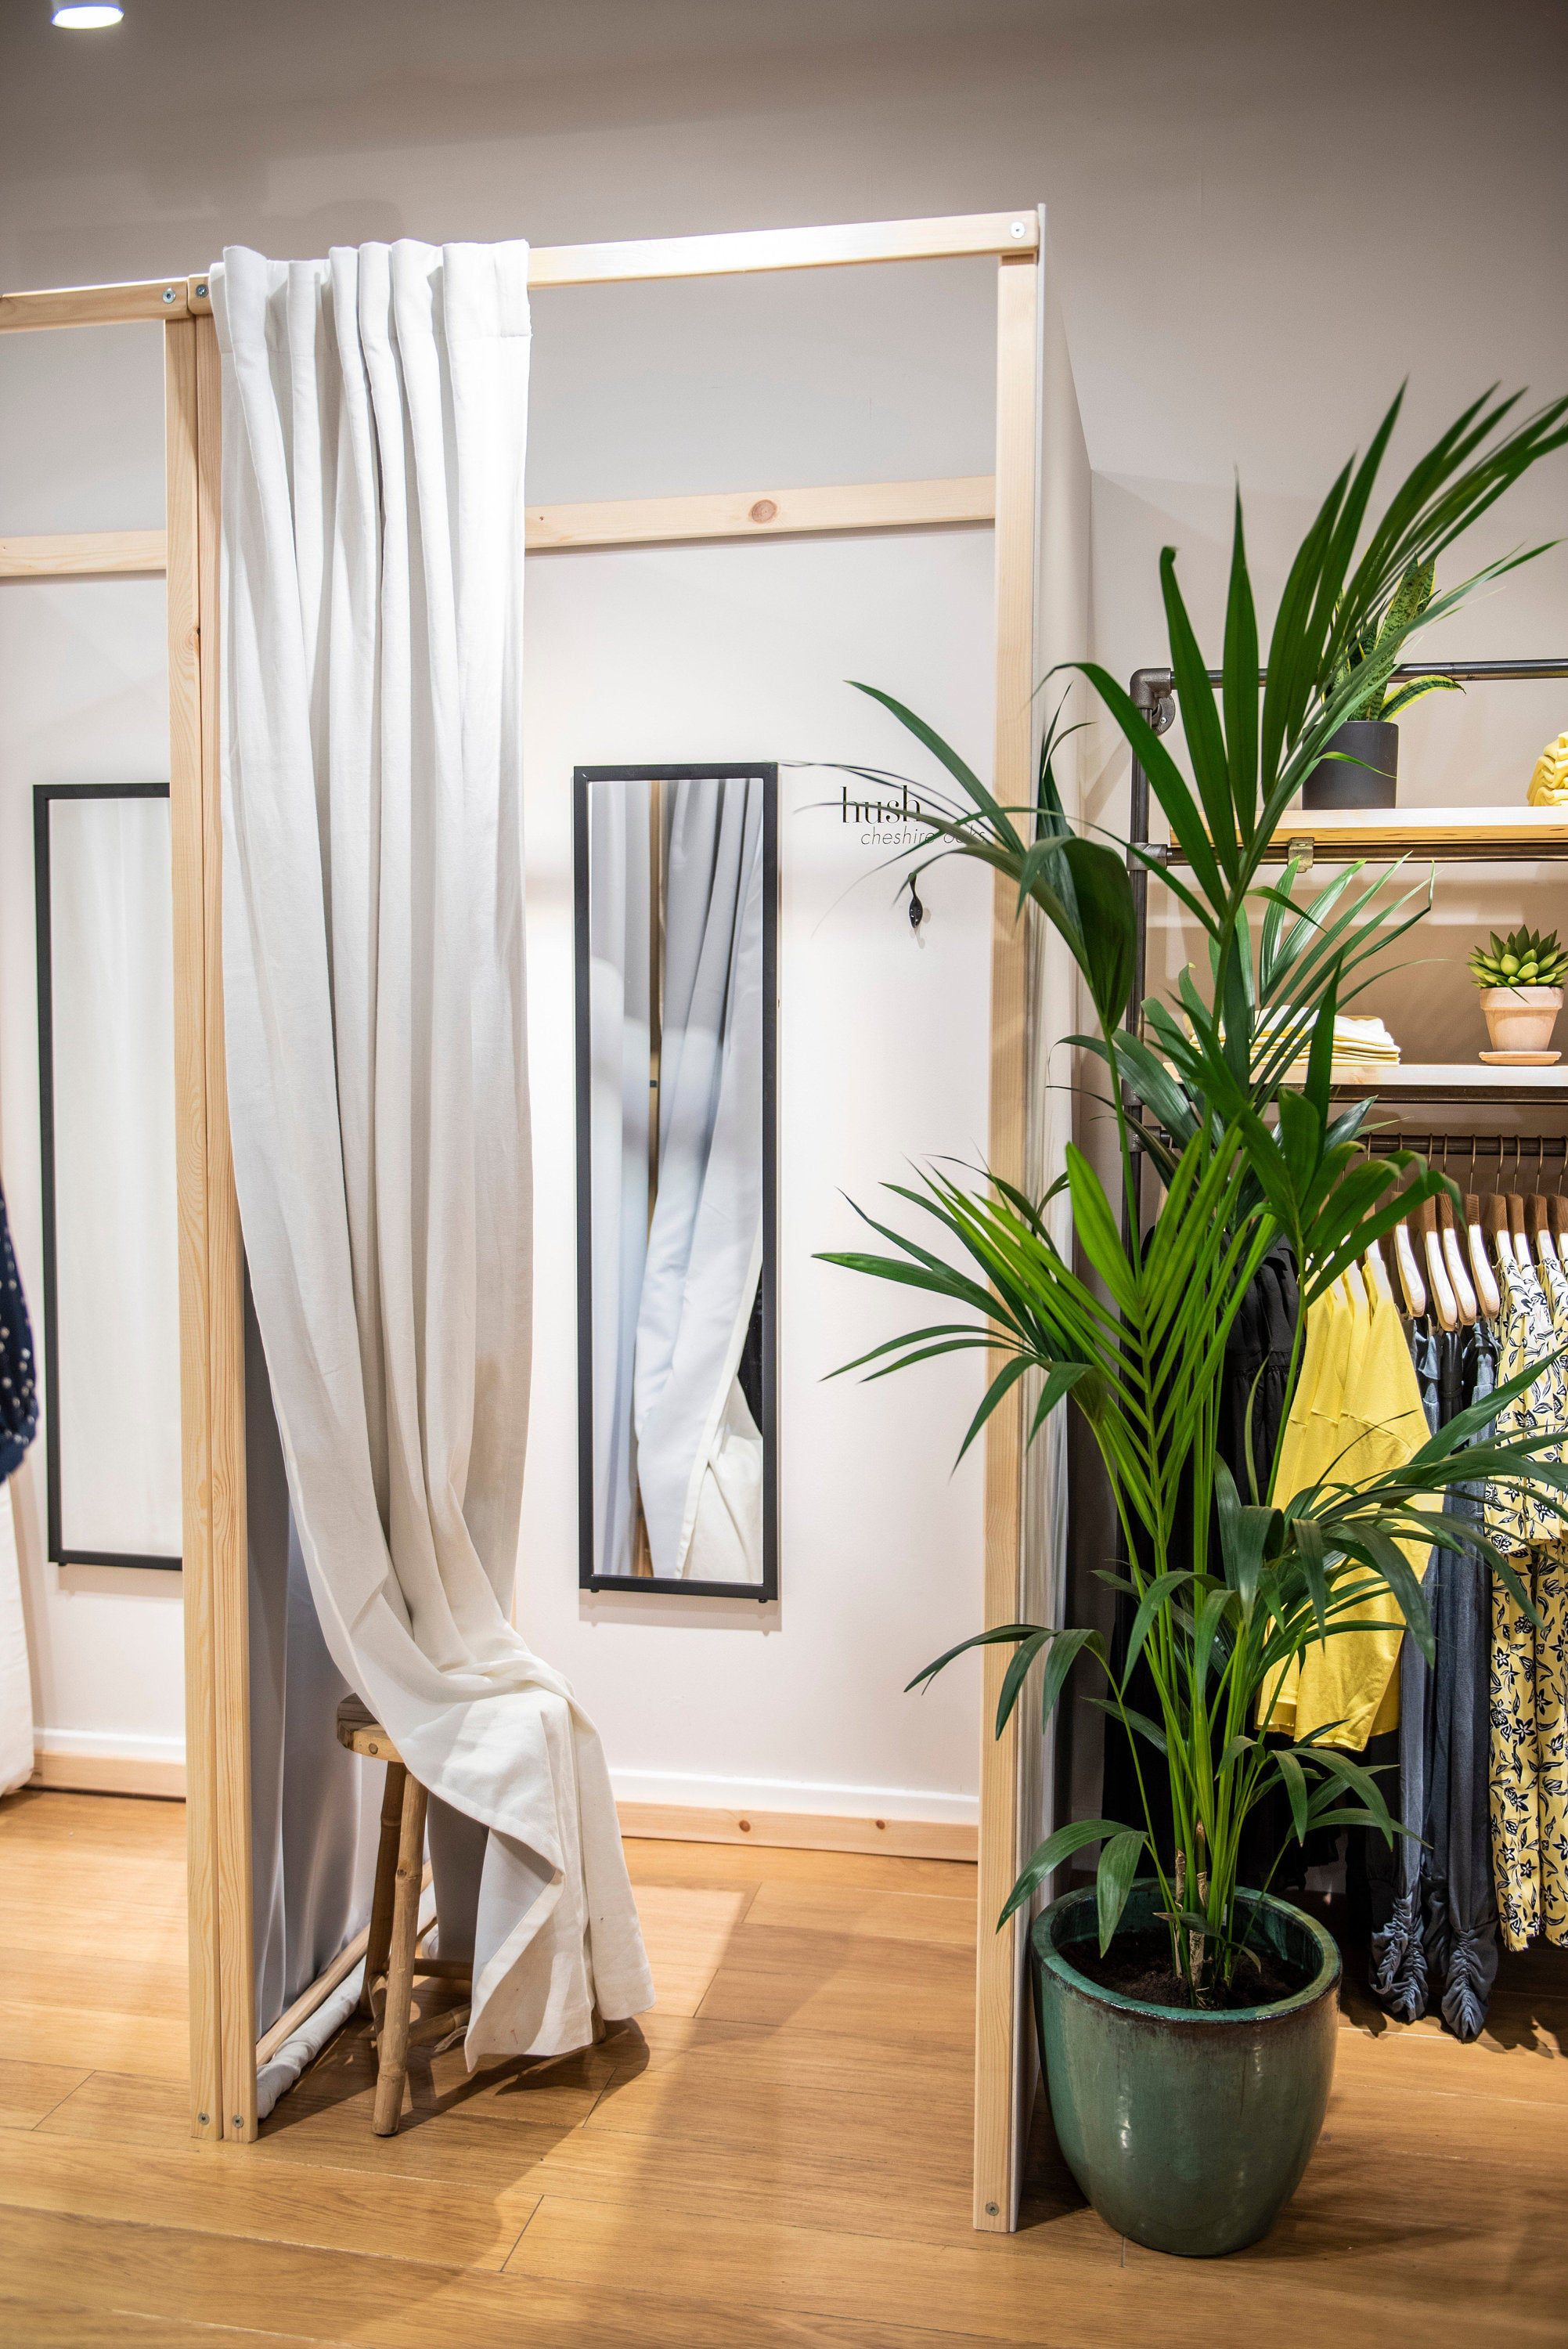 Changing Room Designs: Shop Fitting Room Dressing Room Changing Room Retail